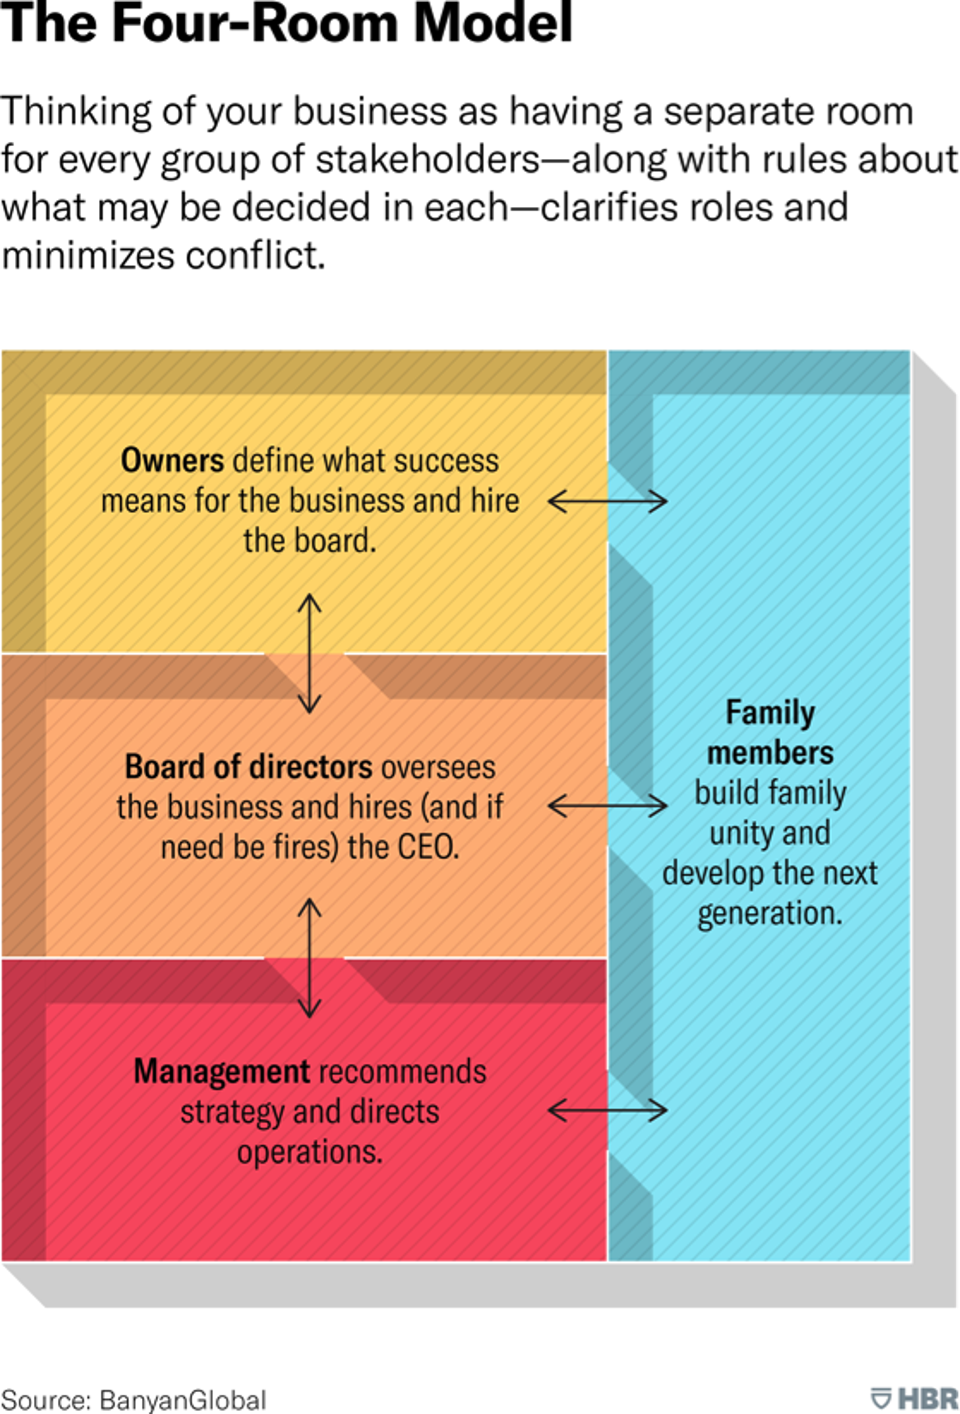 How To Be Both A Business And A Family: Role Challenges In A Family Business